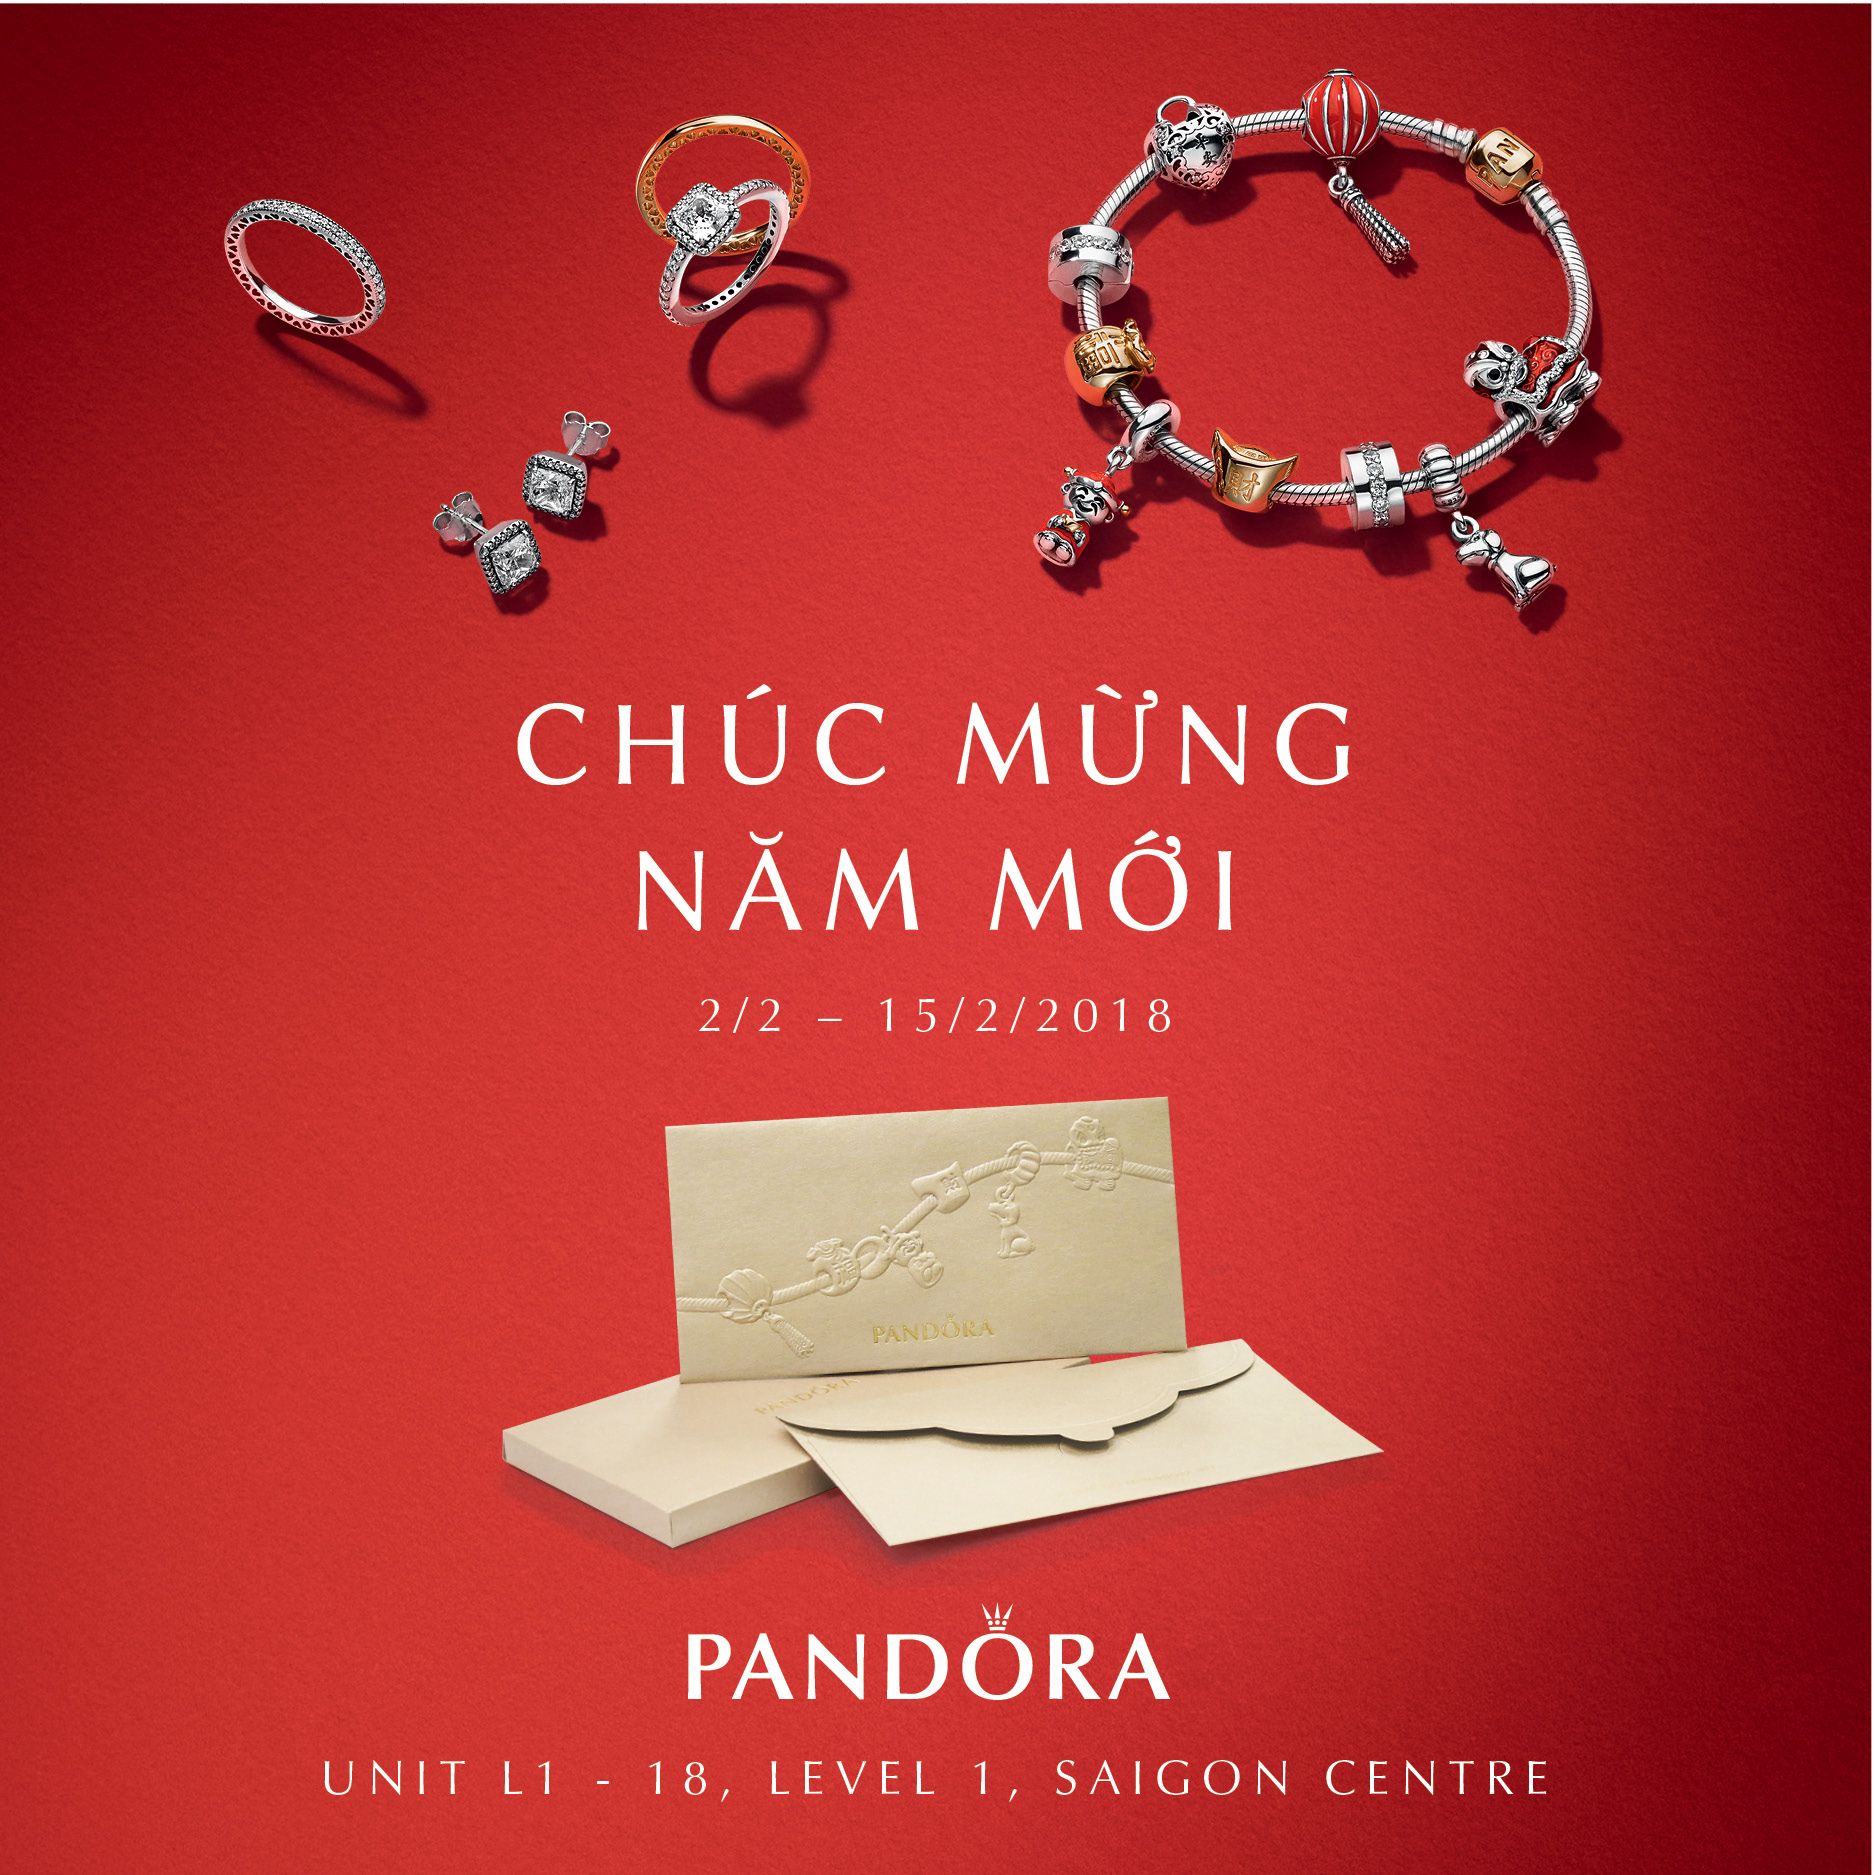 LUNAR NEW YEAR GWP PROMOTION